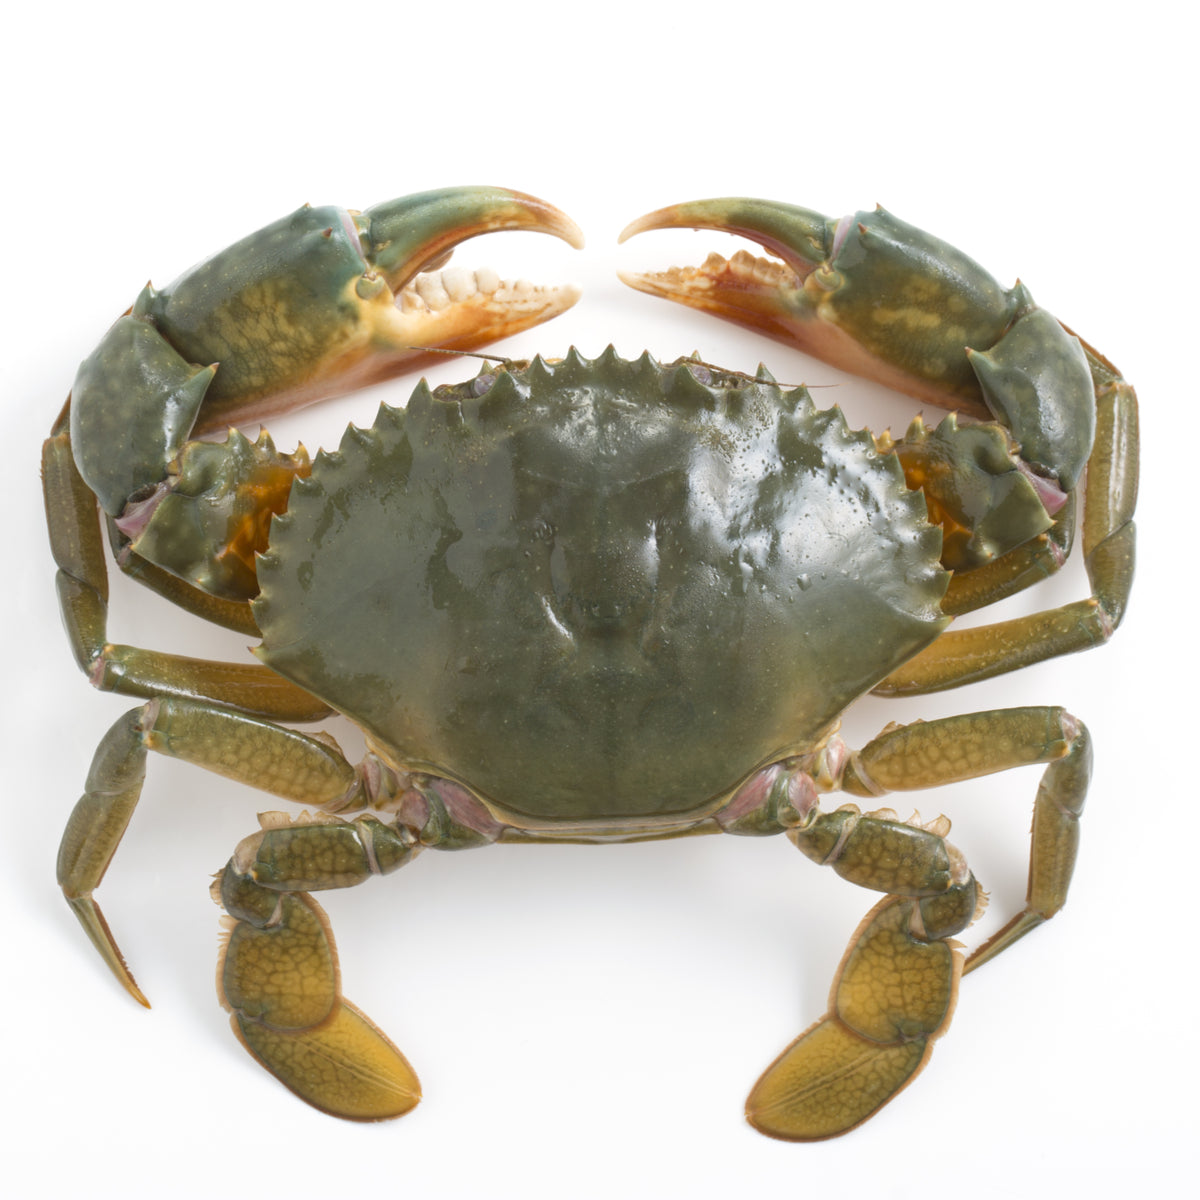 CLEANED WHOLE FROZEN LAMU CRABS (450-550g per piece)